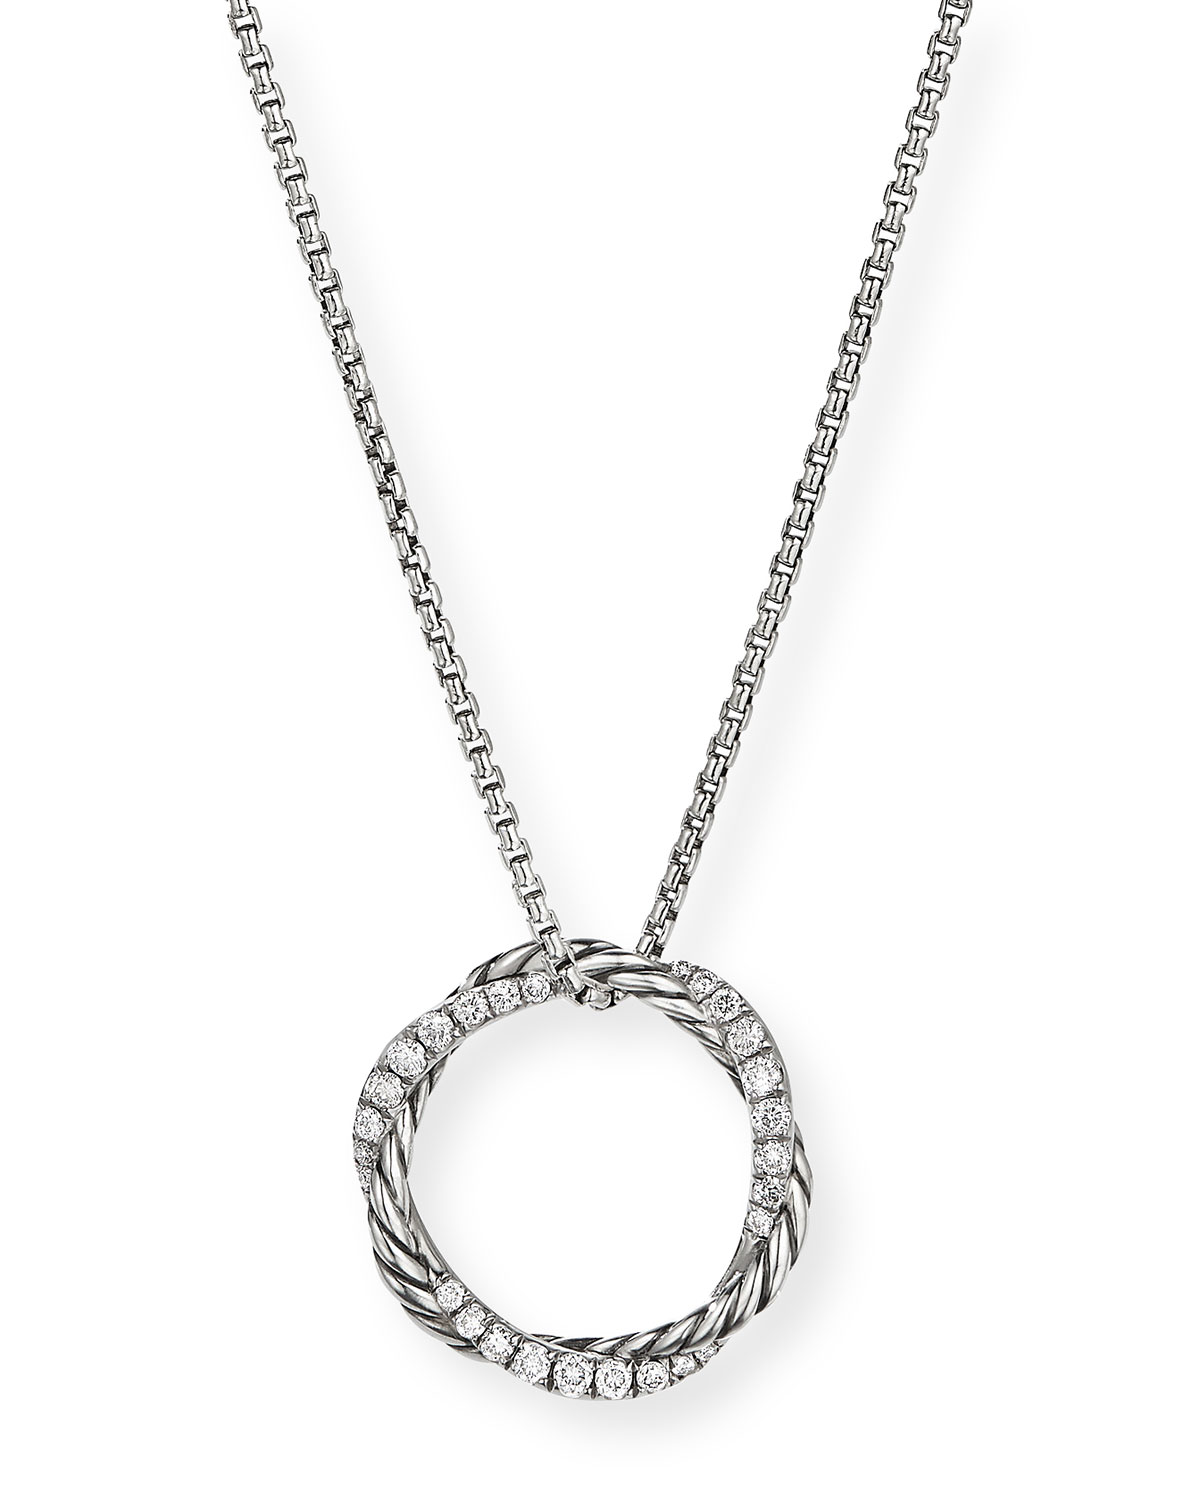 David Yurman PETITE PAVE INFINITY PENDANT NECKLACE WITH DIAMONDS